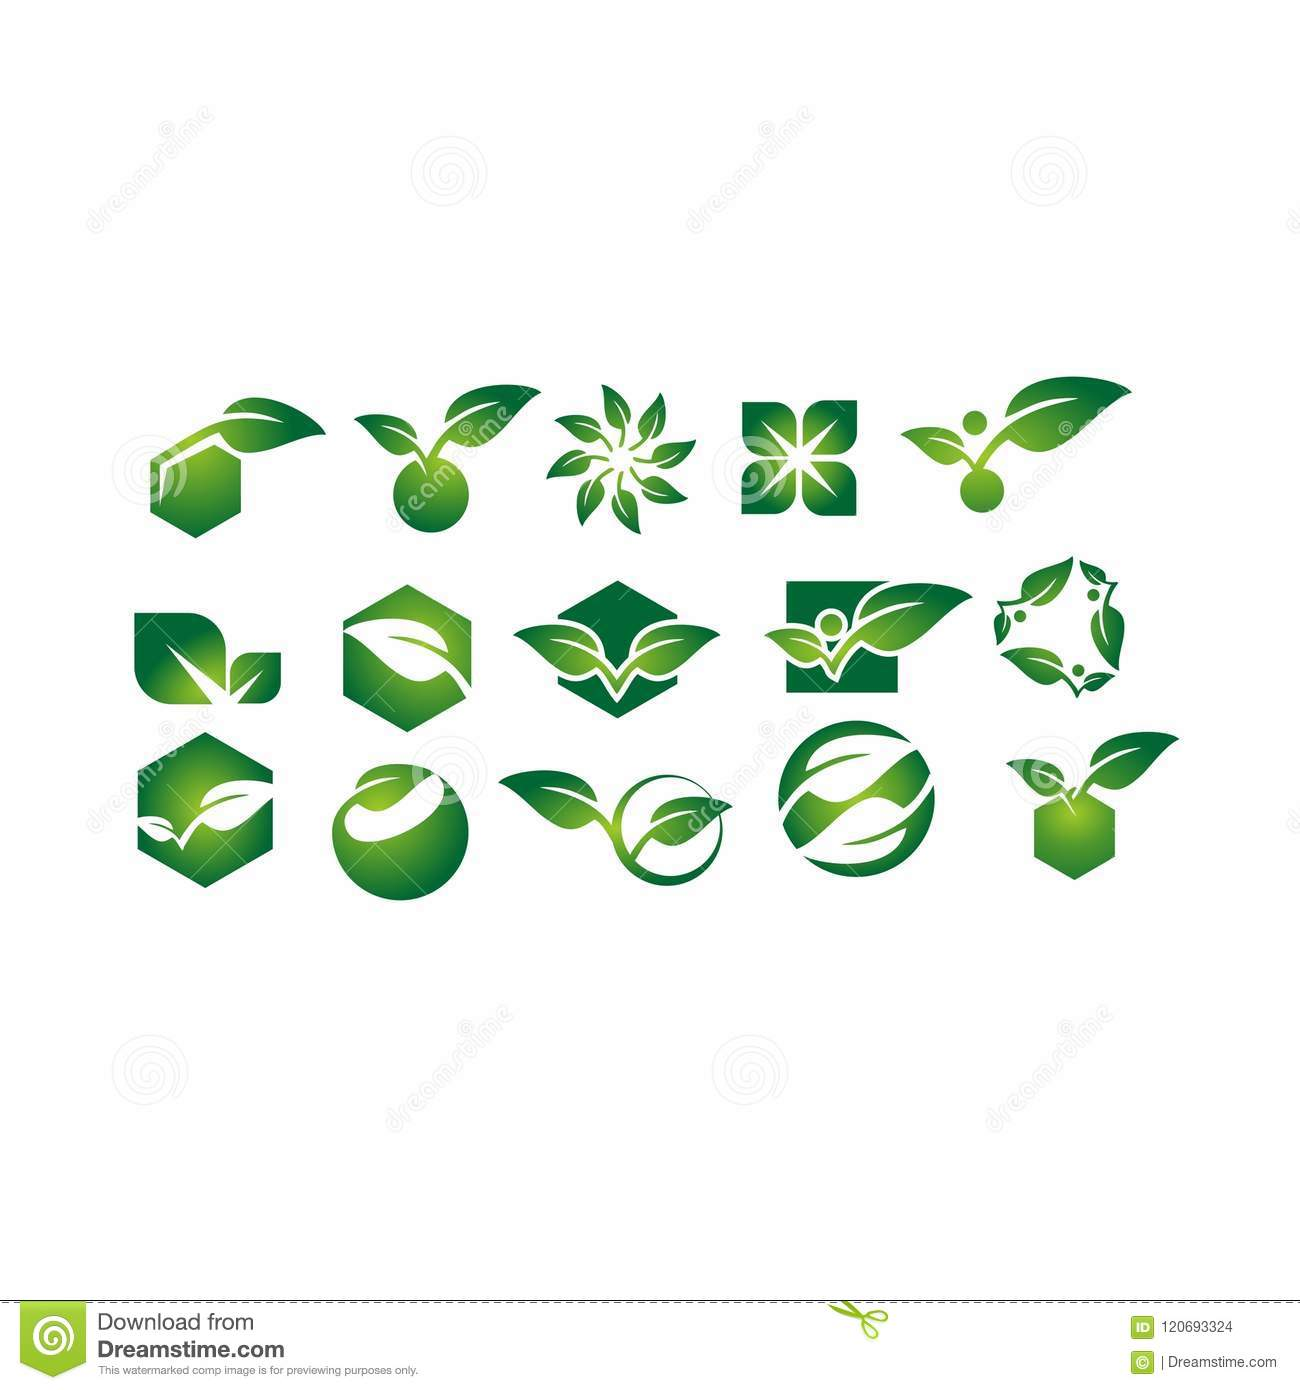 Leaf,plant,logo,ecology,people,wellness,green,leaves,nature symbol icon set of vector designs